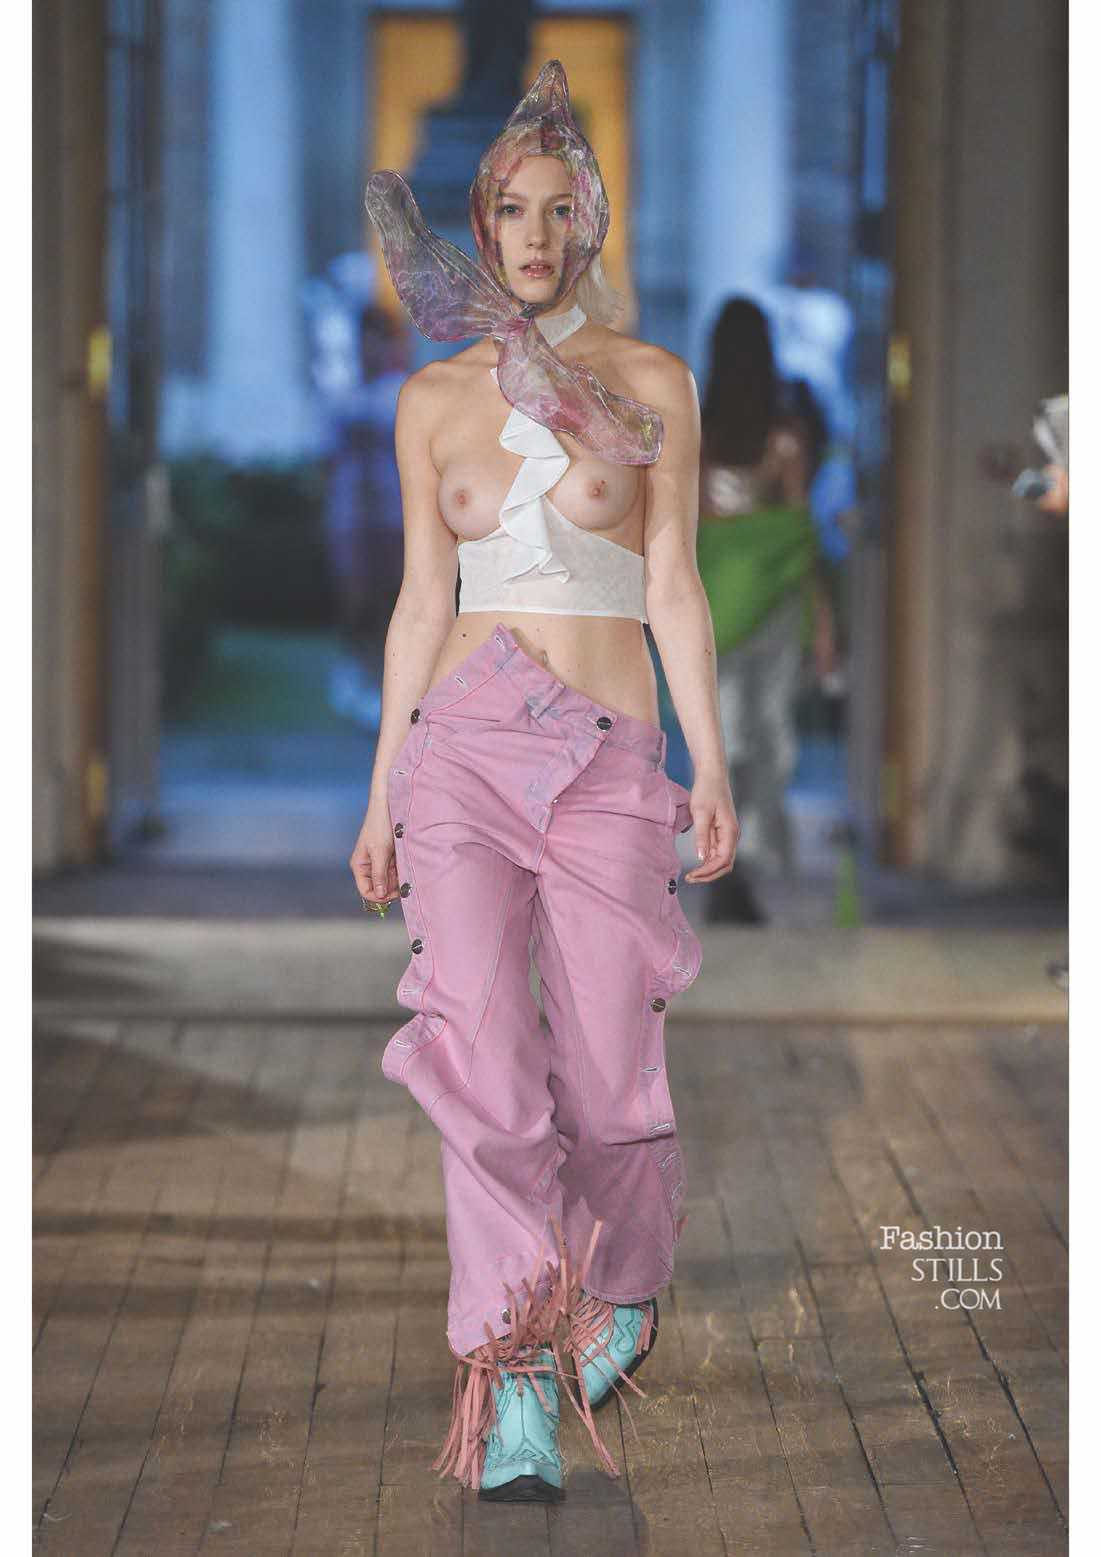 Neith Nyer_1513681575_5b_look-book-_-press-release-ss18-neith-nyer-006.jpg